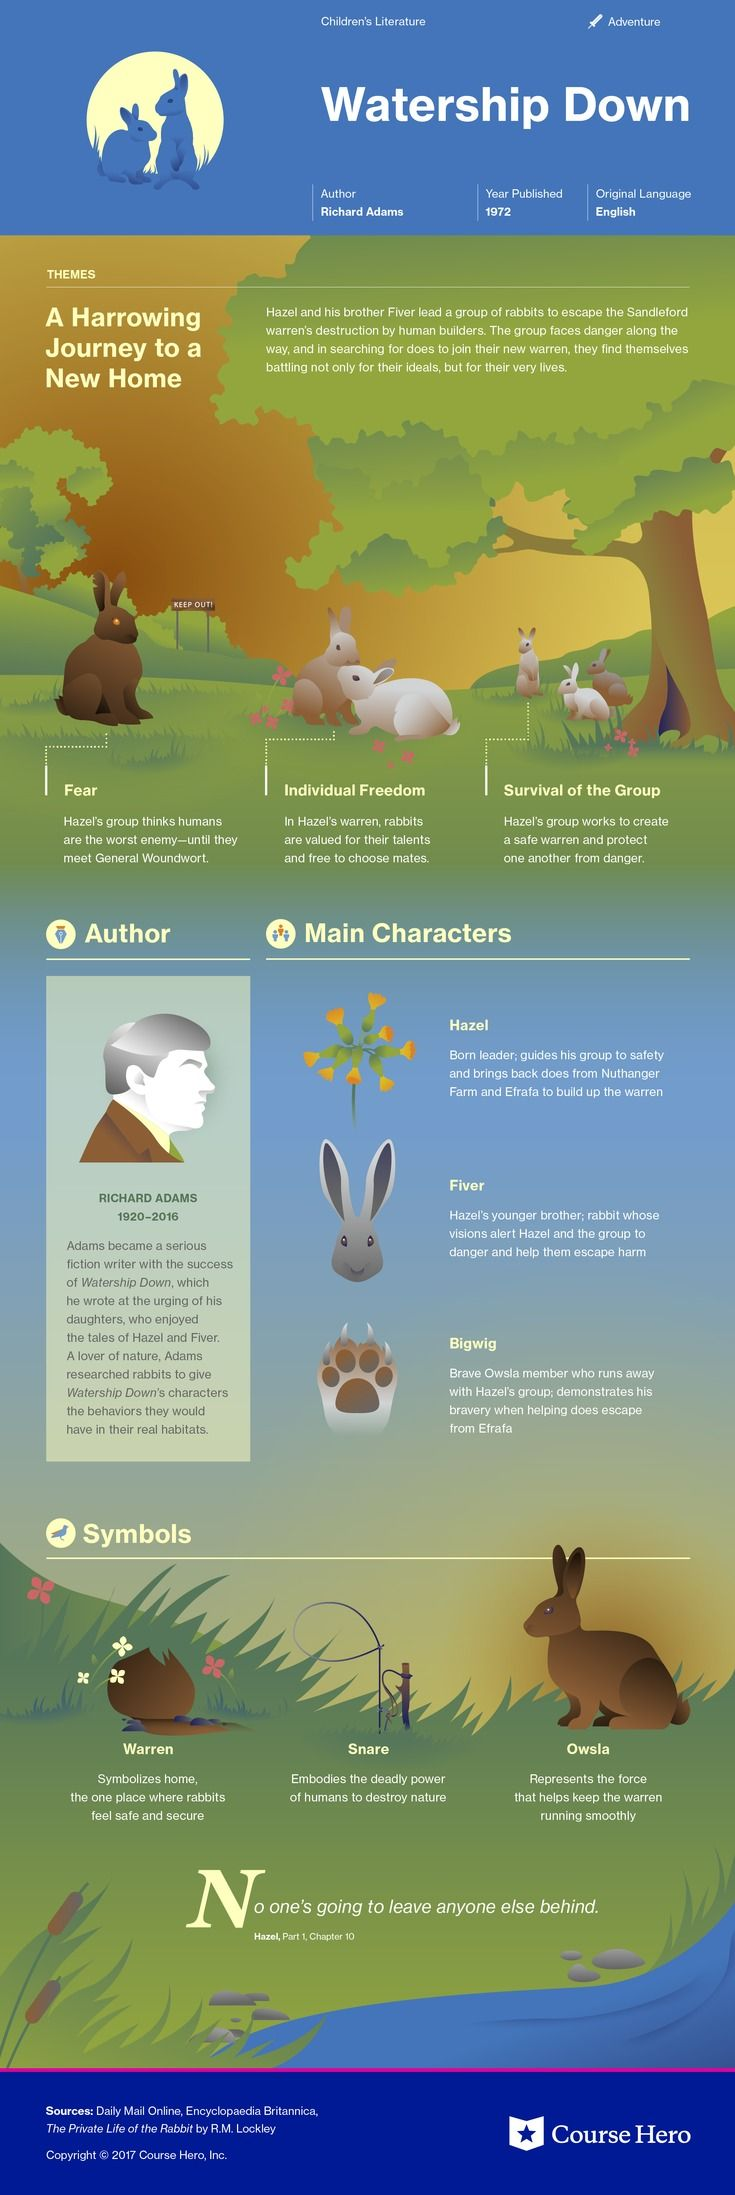 This @CourseHero infographic on Watership Down is both visually stunning and informative!